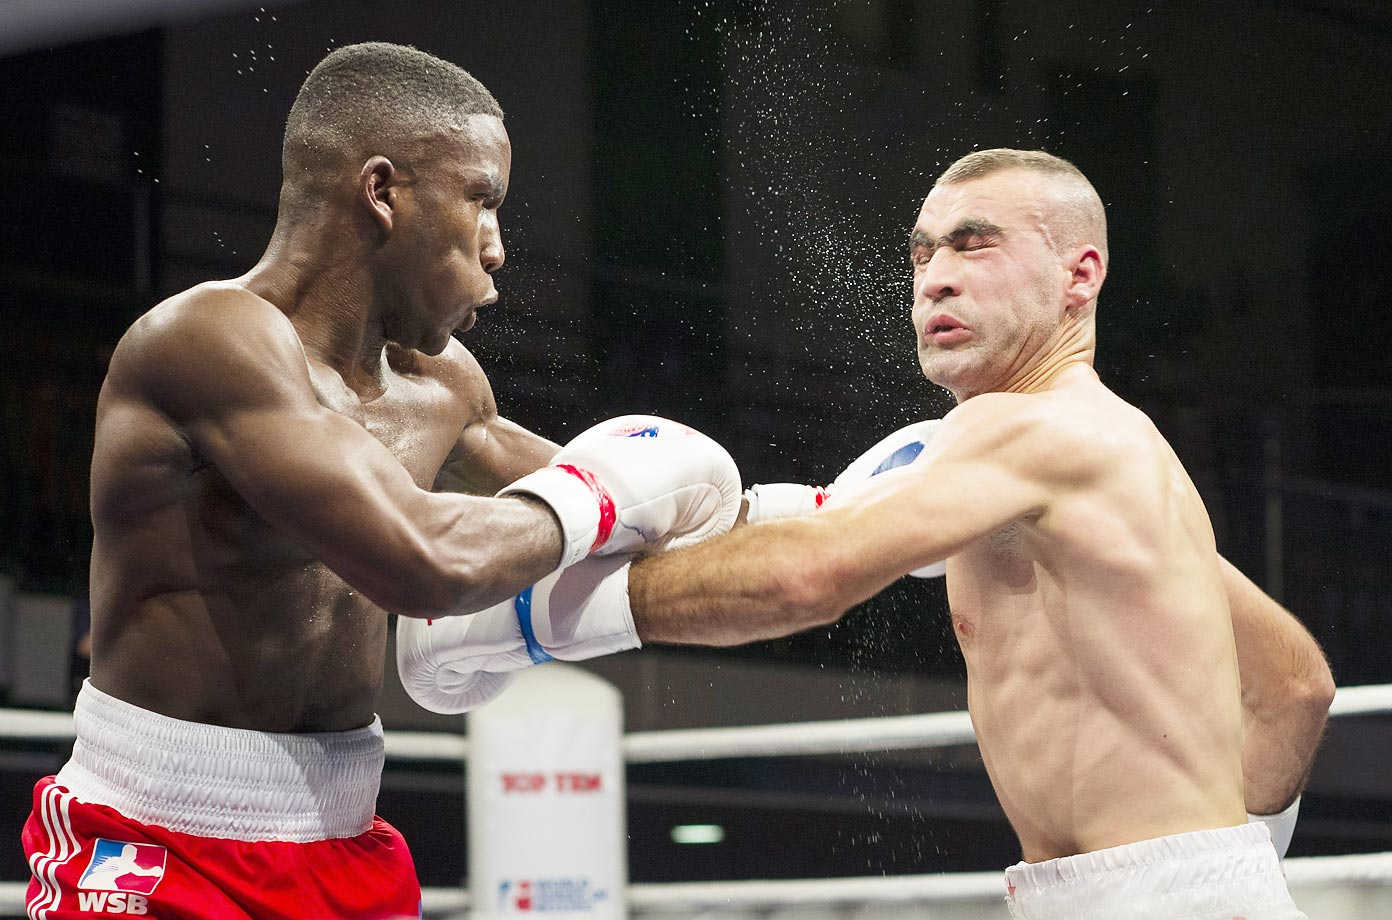 Ekow Essuman (left) of British Lionhearts during his welterweight fight against Sofiane Tabi of Algeria Desert Hawks in London.